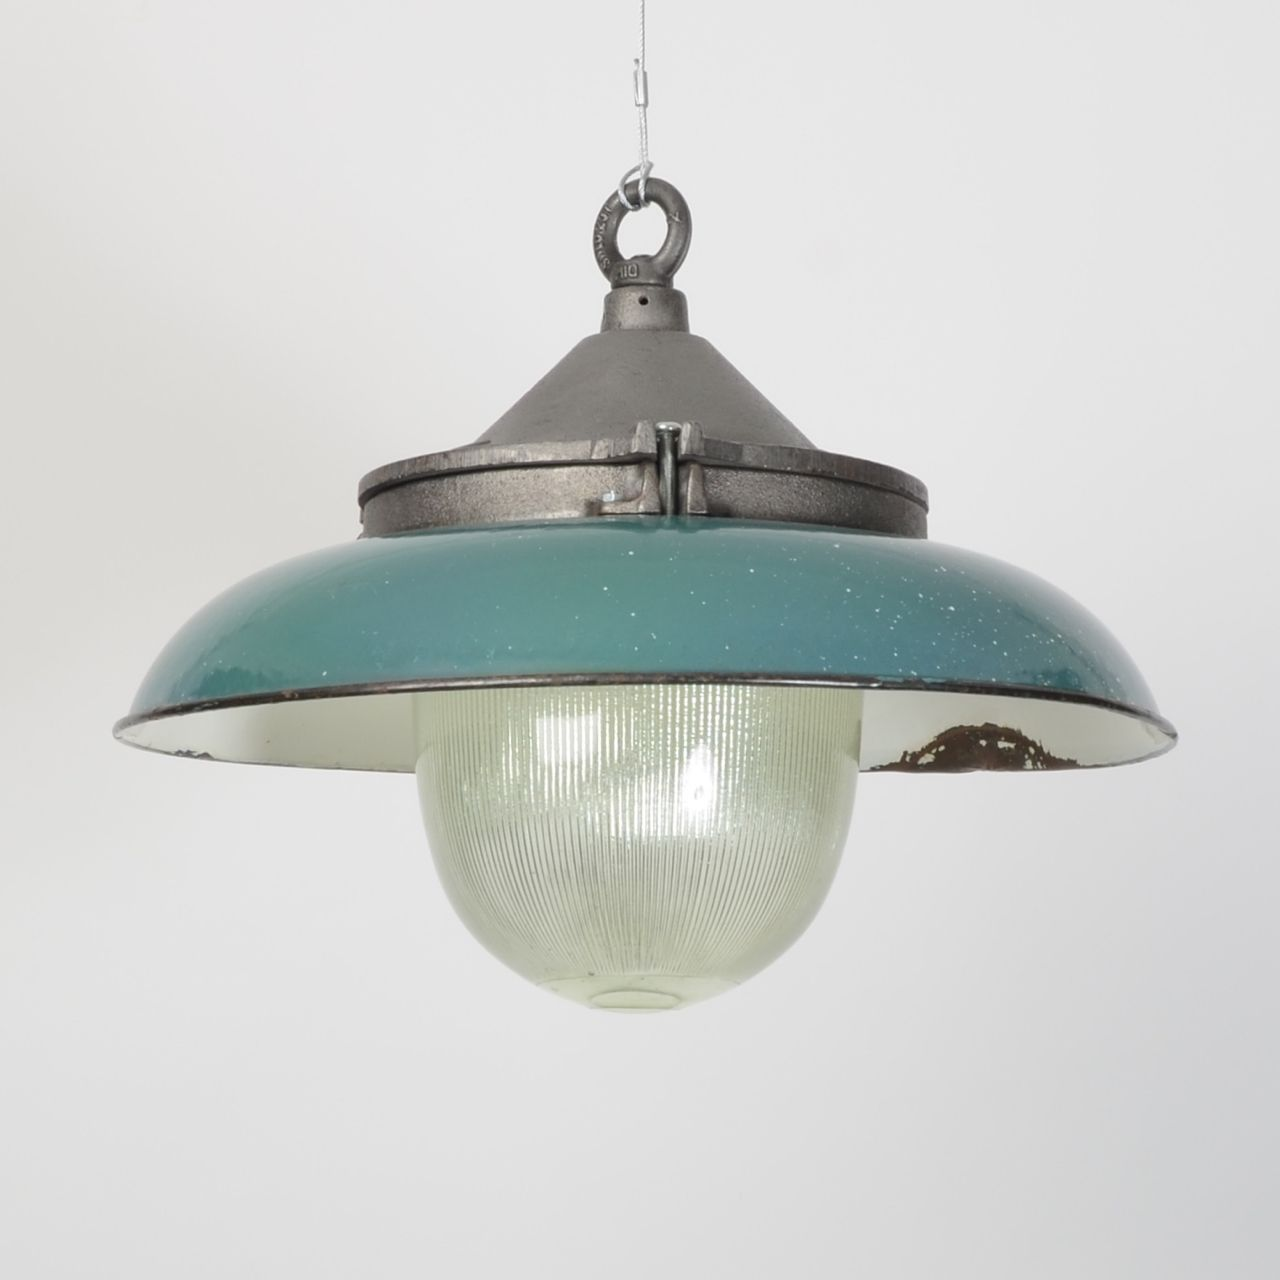 Charming Prismatic Pendant With Shade Turquoise Trainspotters.co.uk   #industrial # Salvage #